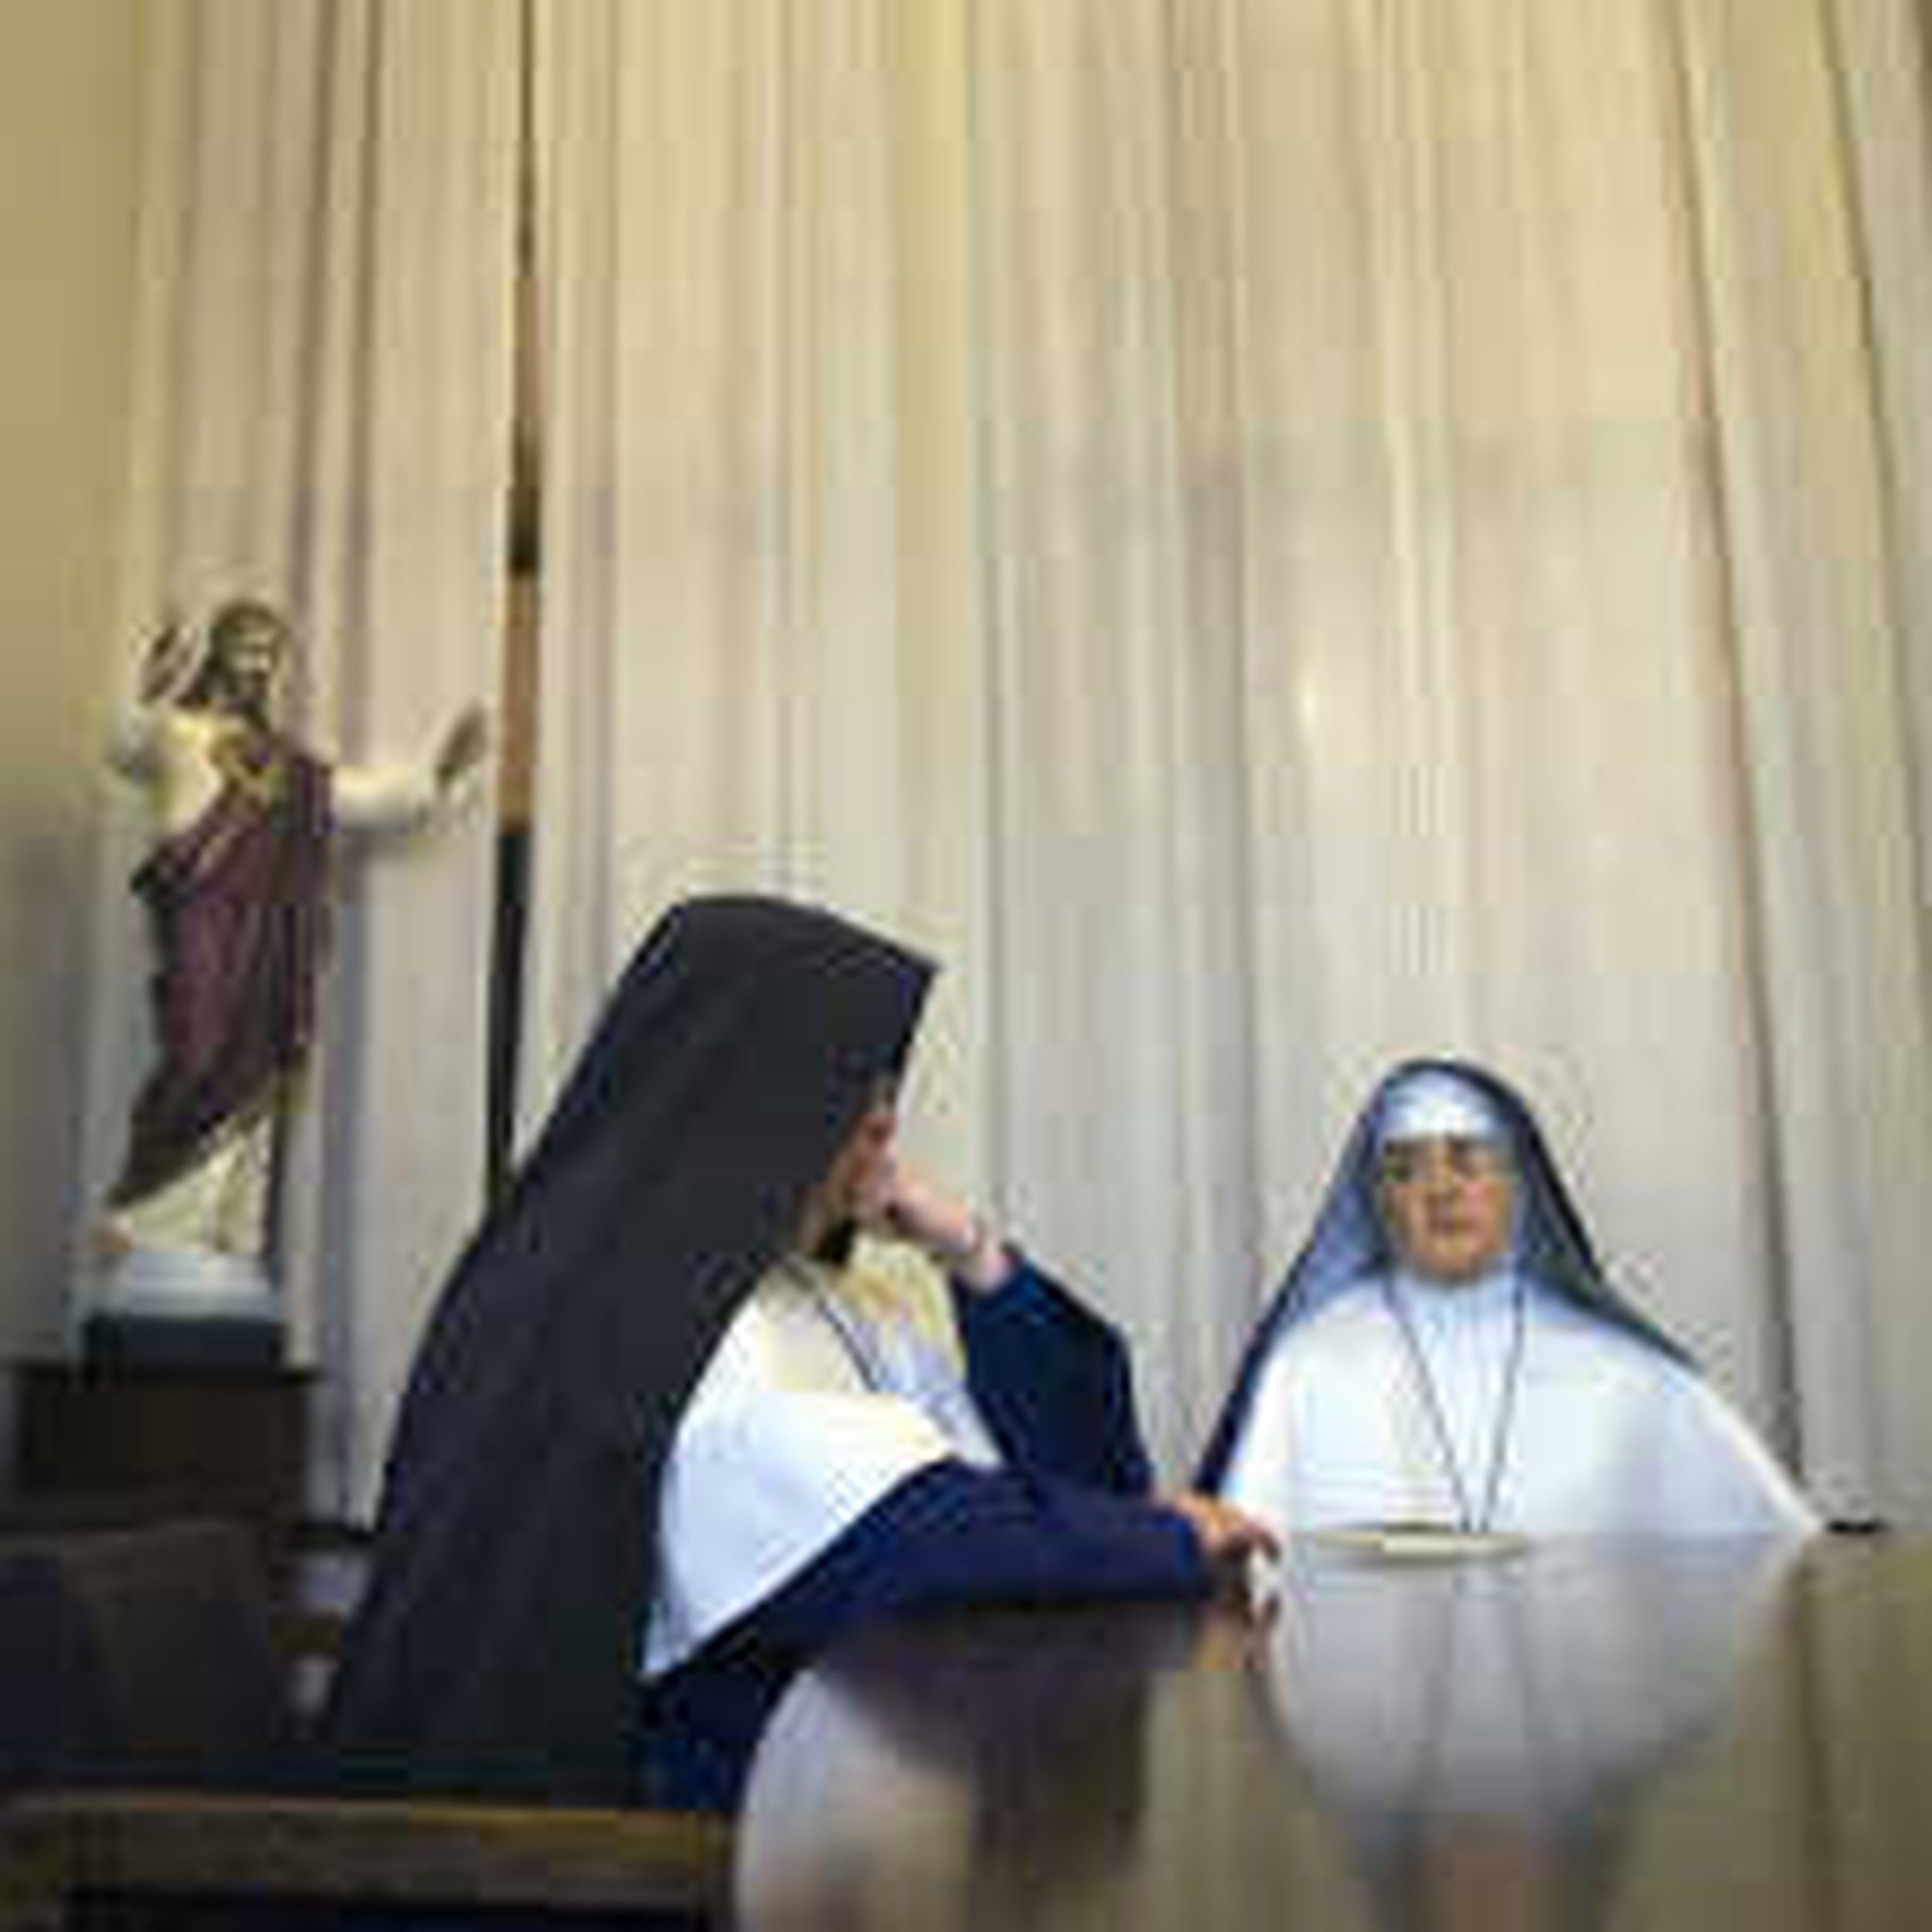 The Singing Nuns Christmas Concert, Mt. St. Michael Convent 2020 Nuns pushed out of convent | The Spokesman Review